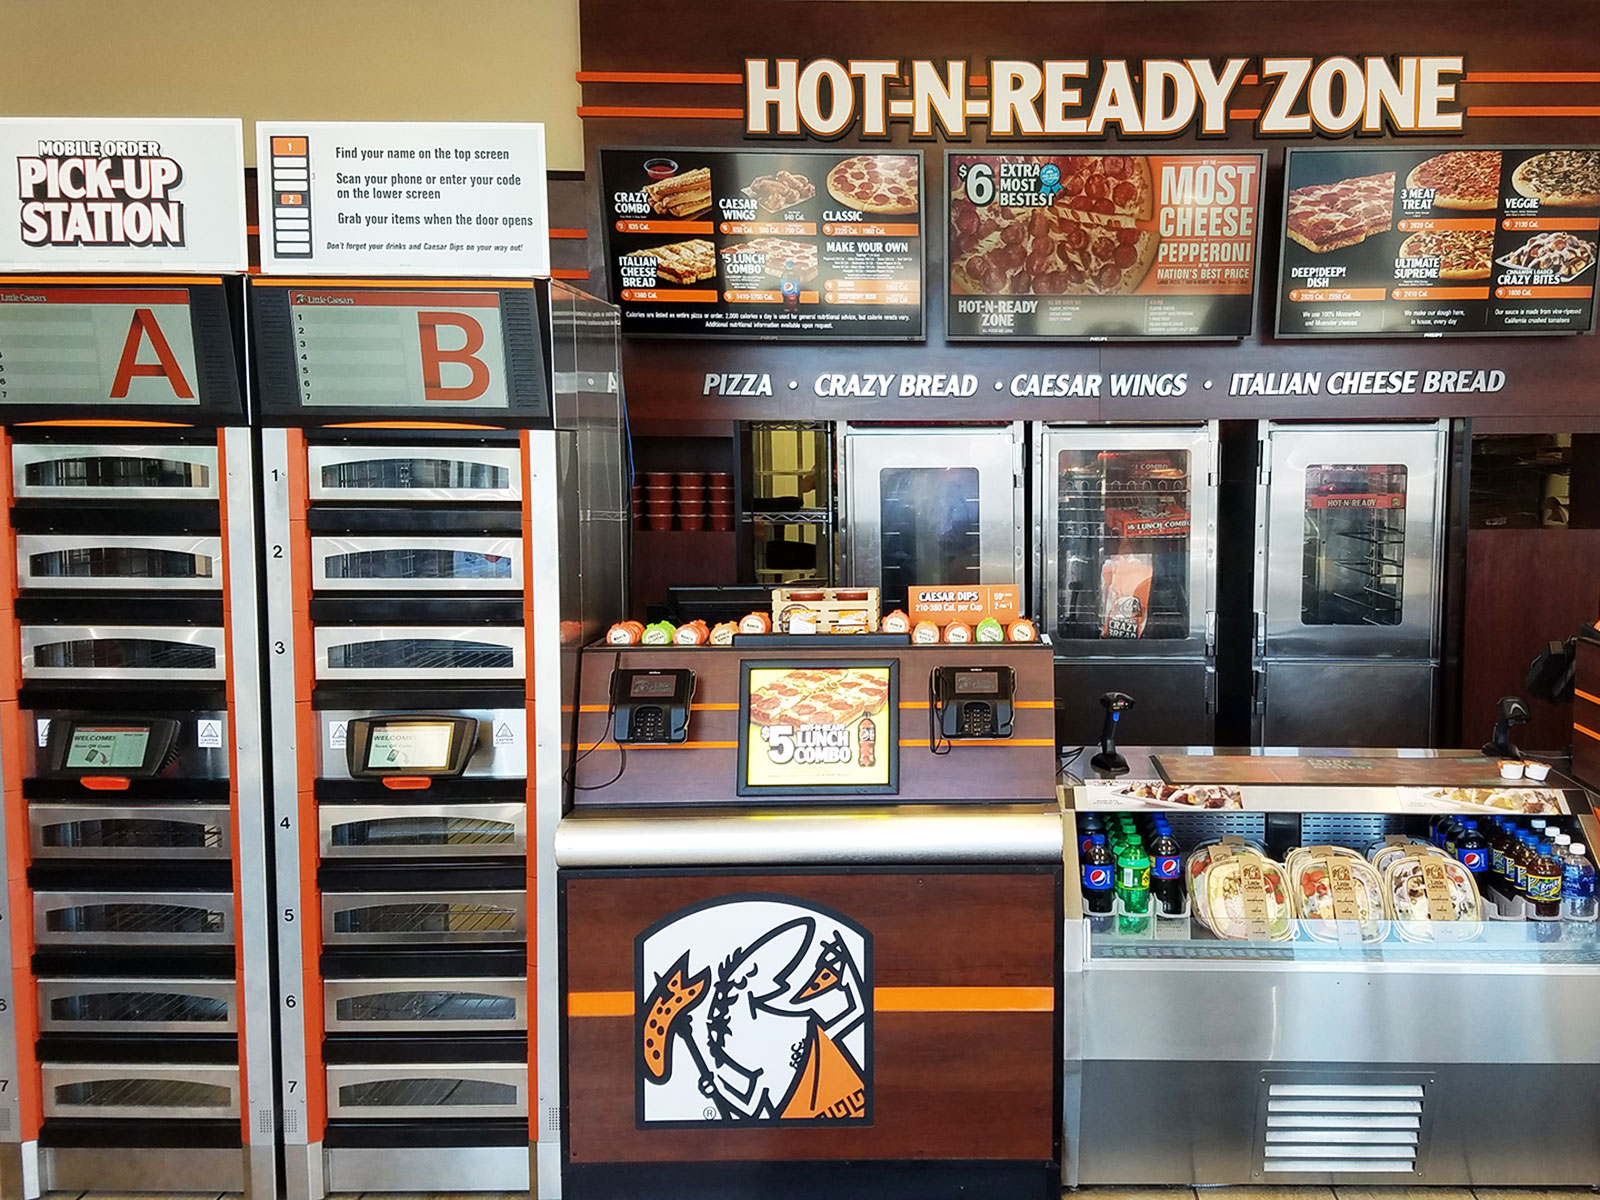 reserve-n-ready from little caesars